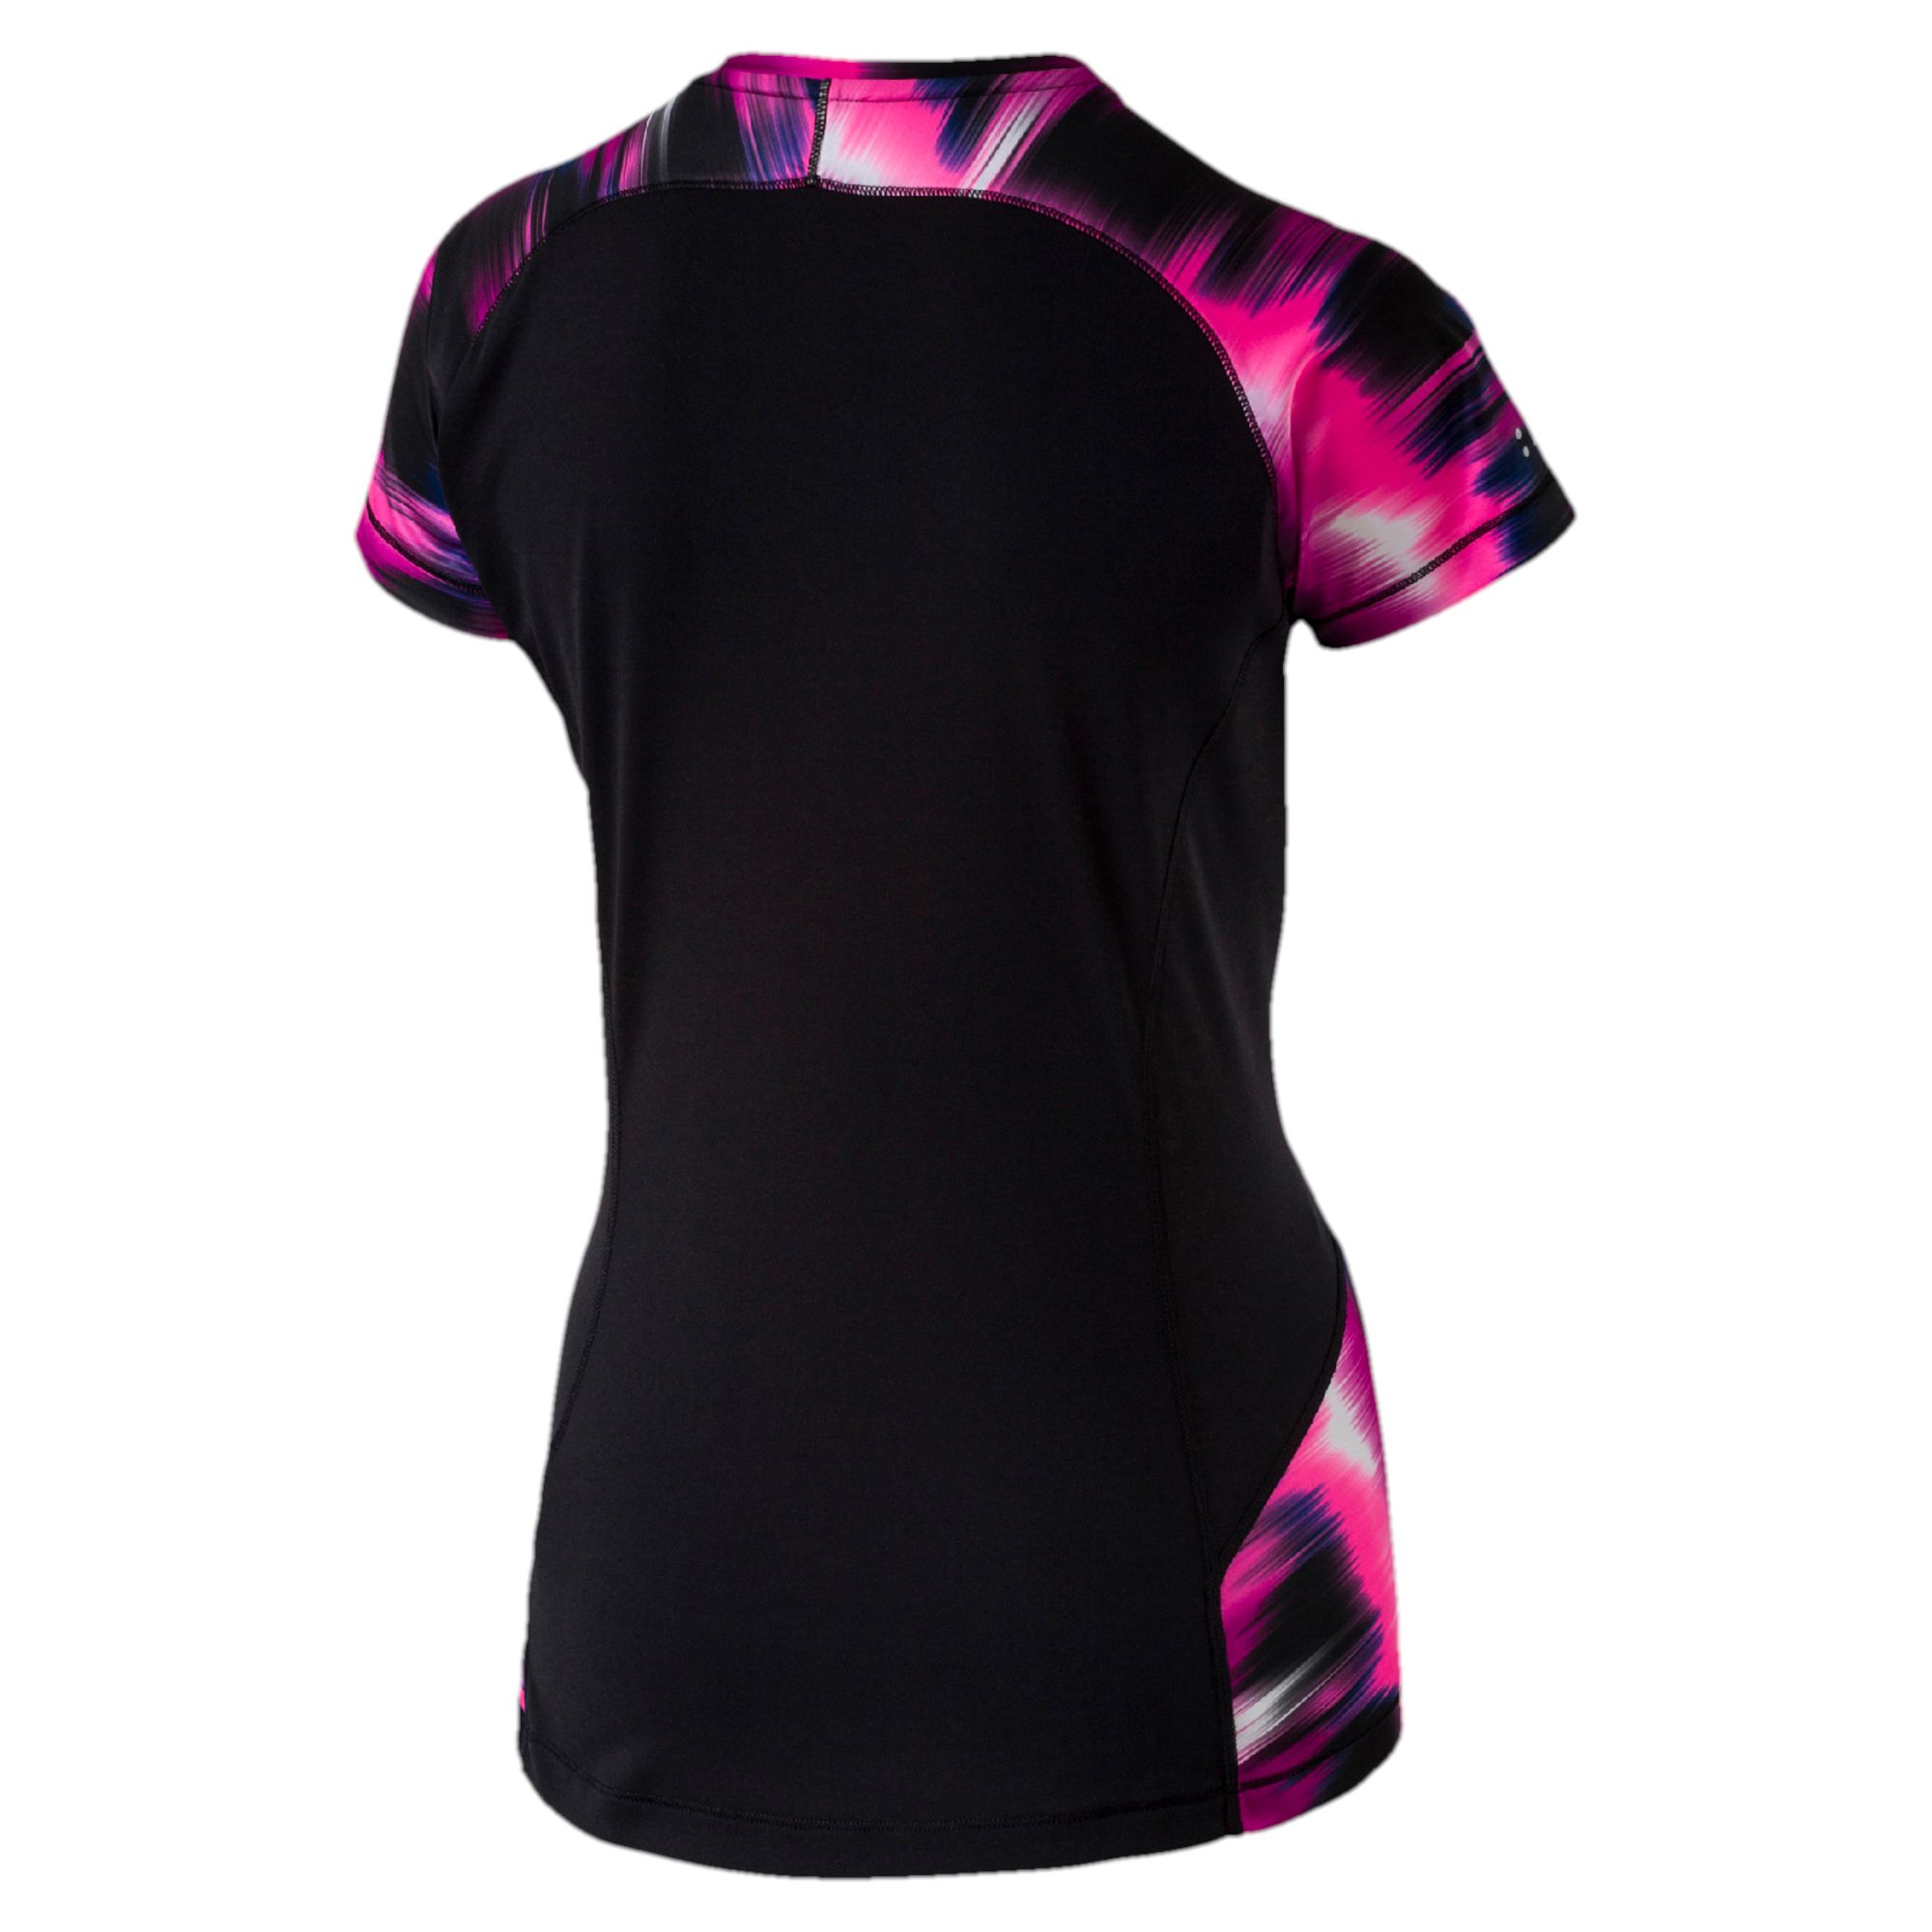 puma t shirt running graphic pour femme course t shirt performance femmes neuf. Black Bedroom Furniture Sets. Home Design Ideas